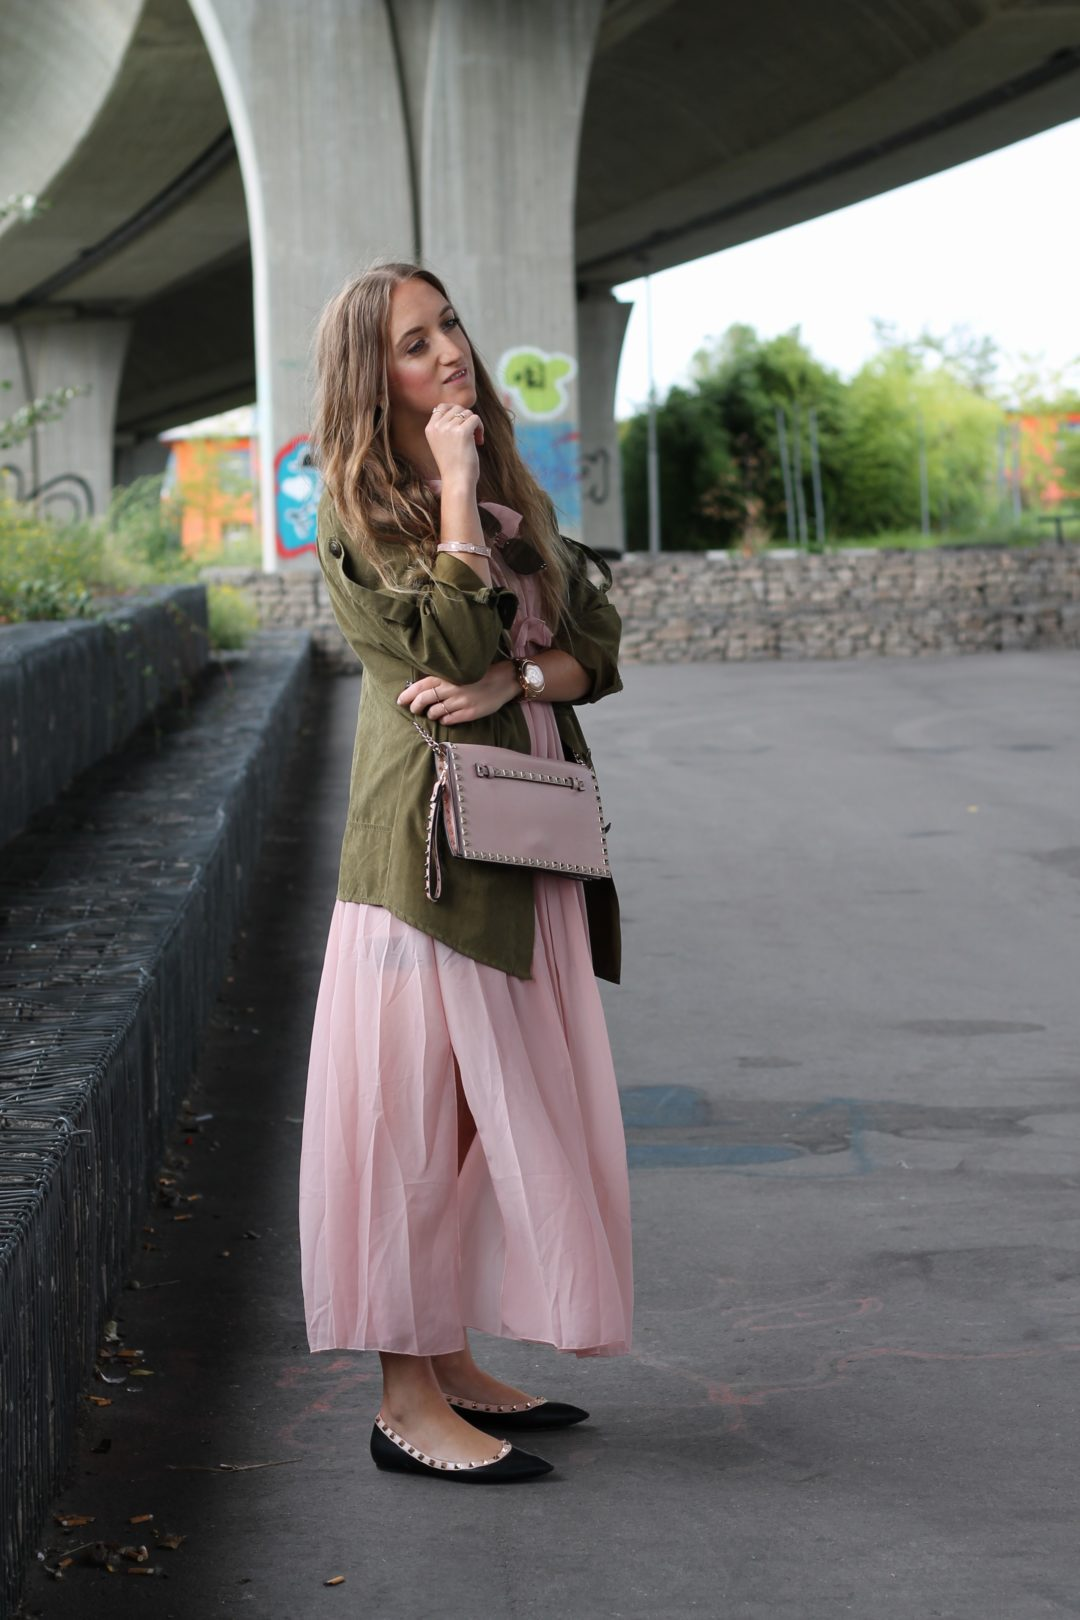 Long dress and parka - The hot summer days are over and with this also the wearing of short summer dresses...as an alternative I love to wear long dresses @wiebkembg